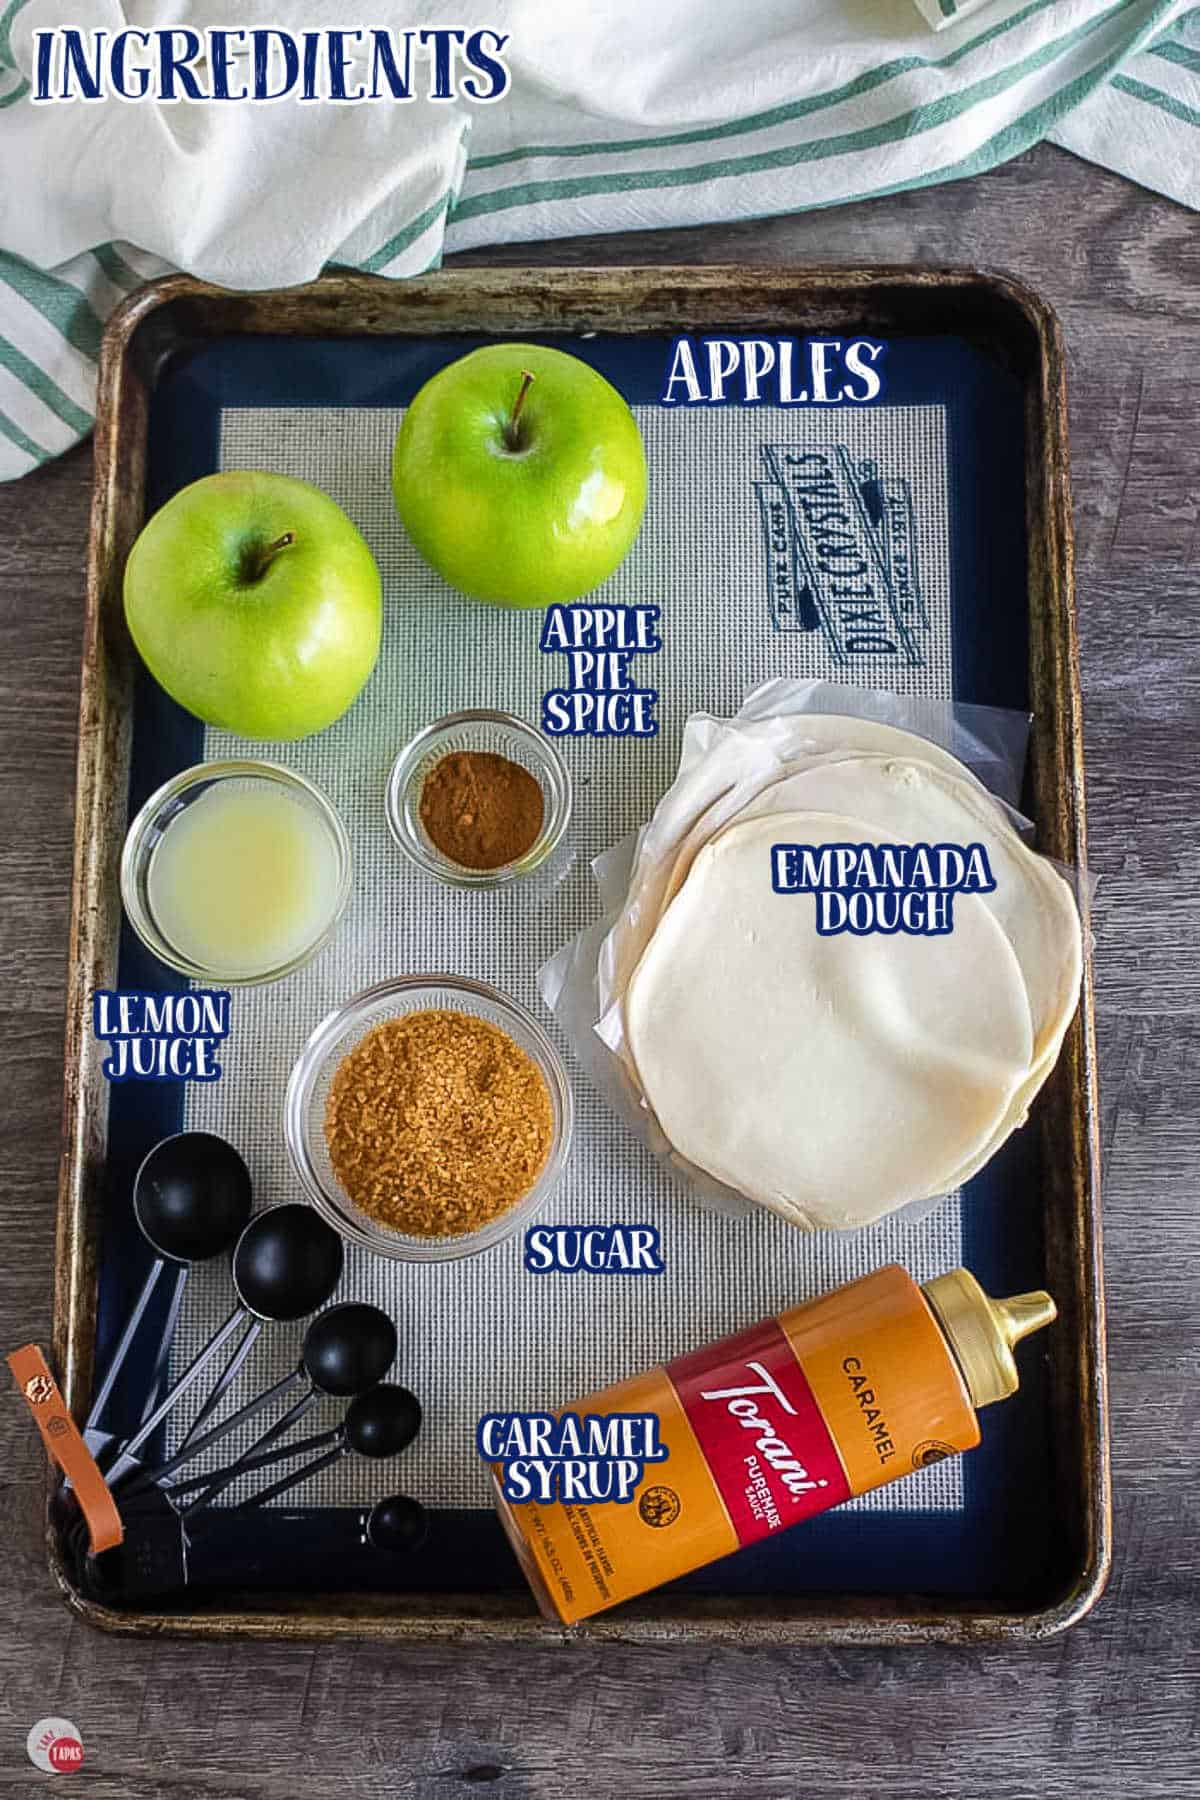 labeled picture of apple empanada ingredients